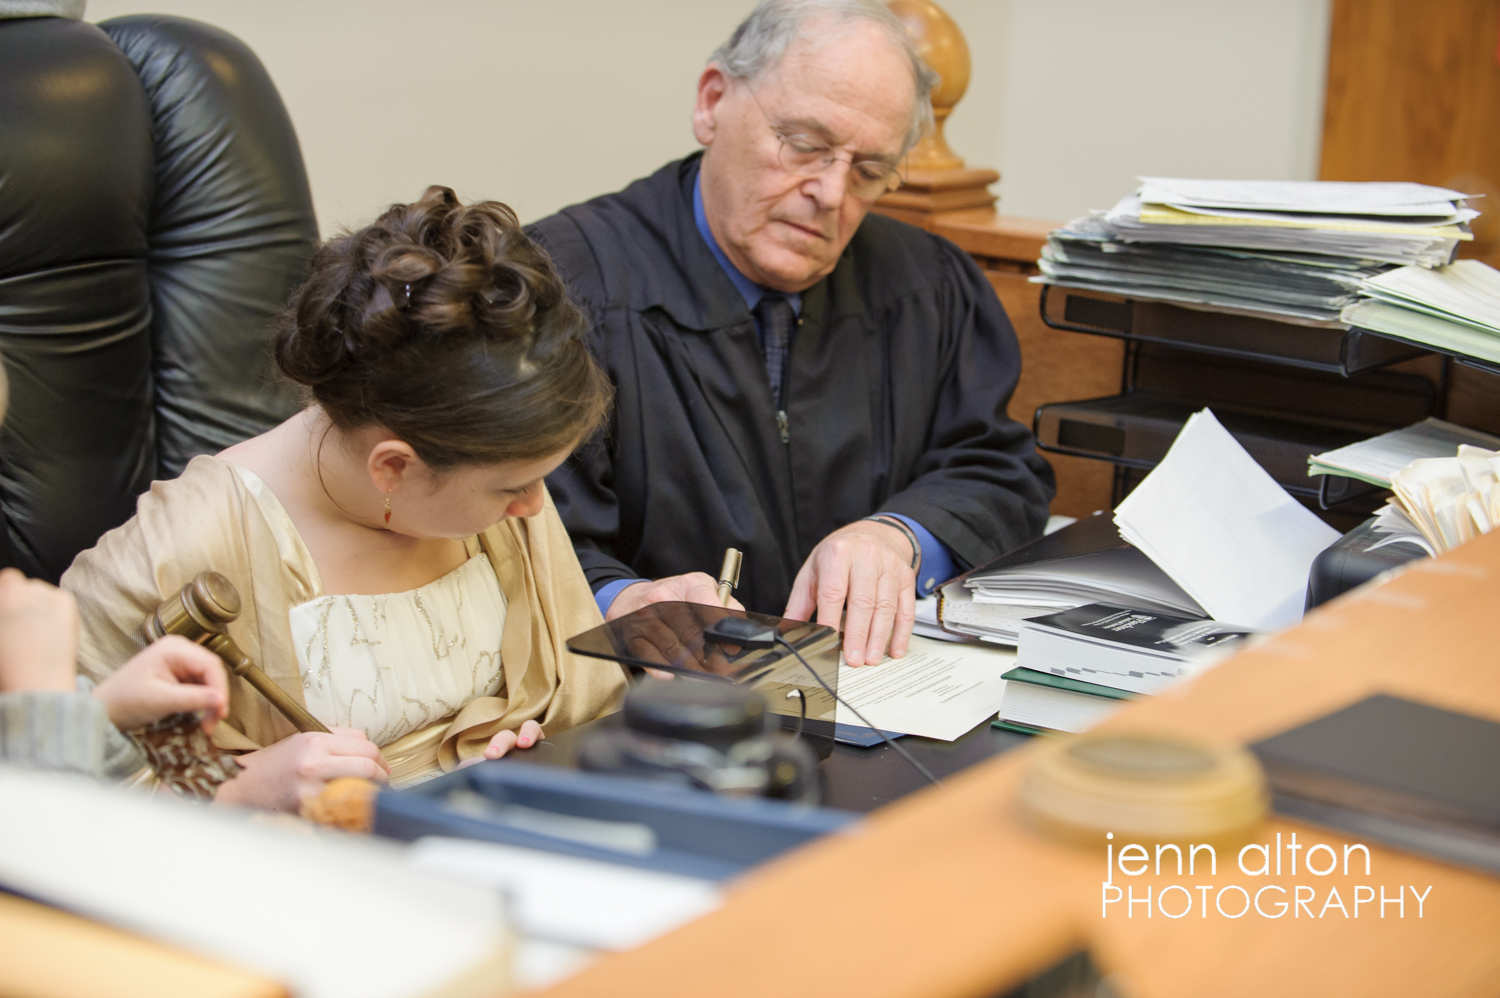 judge on adoption day in courtroom